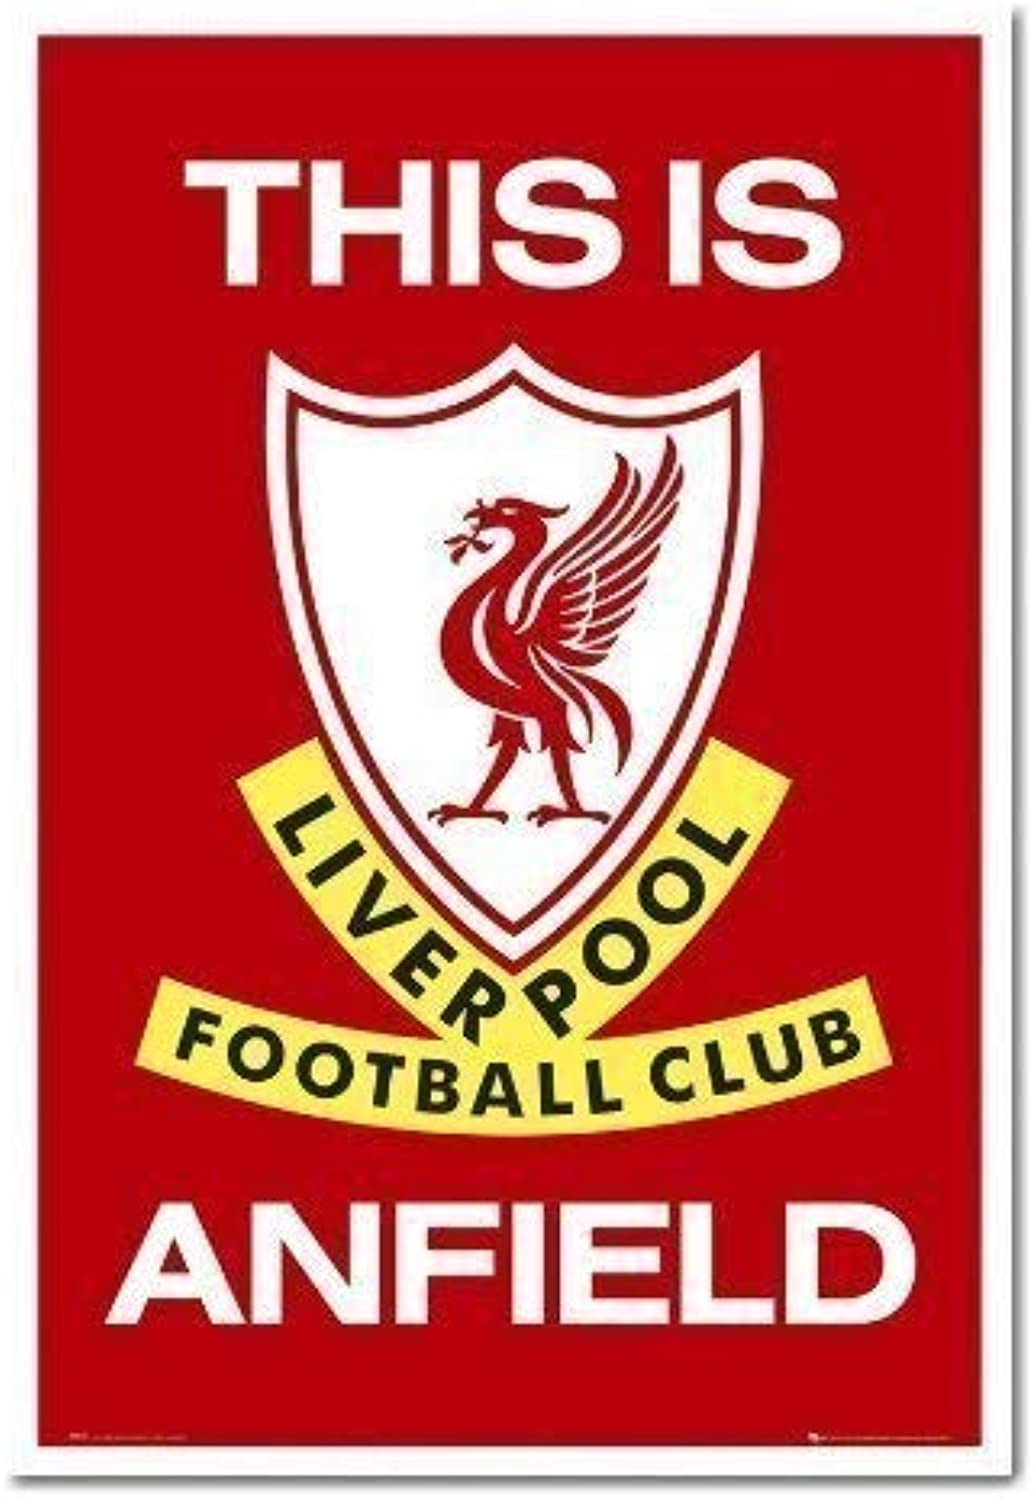 Iposters Liverpool Fc Poster This is Anfield White Framed  96.5 X 66 cms (Approx 38 X 26 inches)